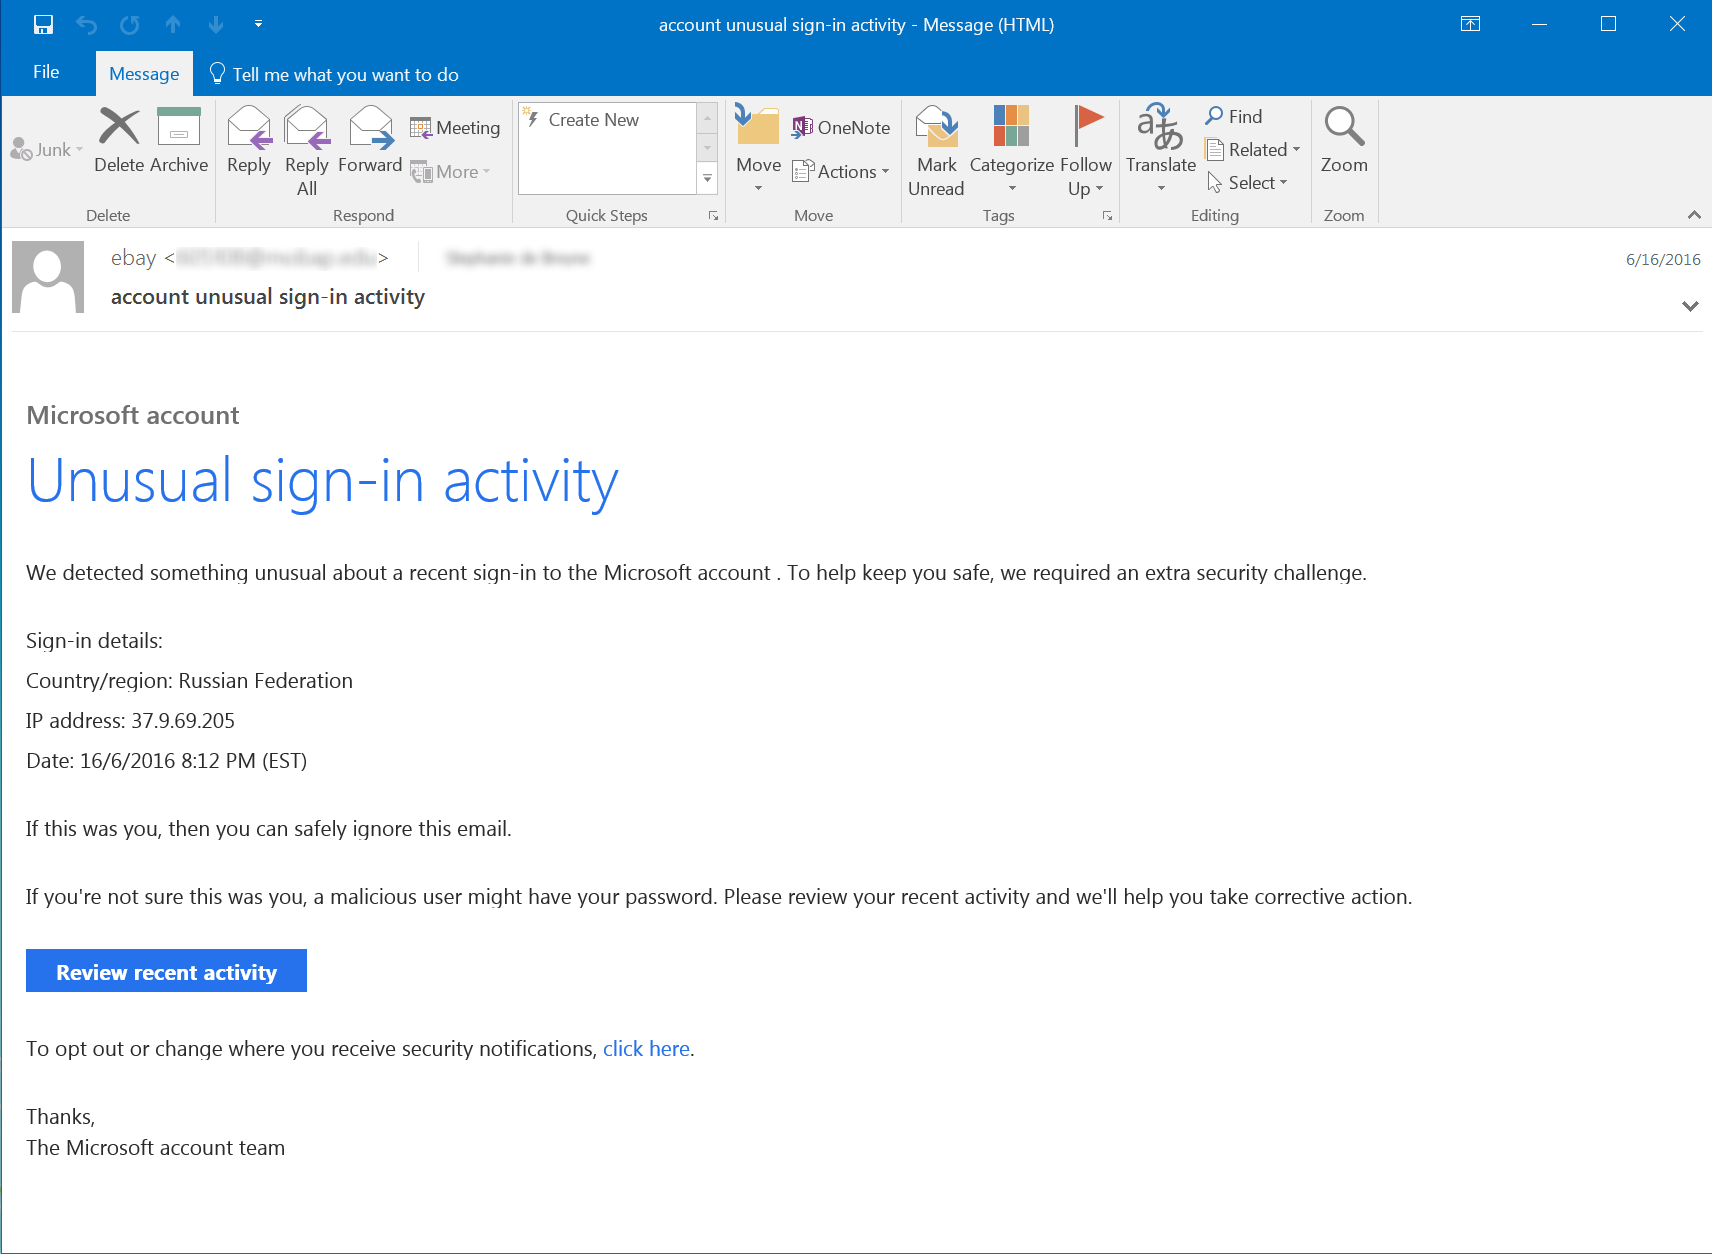 Fake Microsoft Compromised Account Notice